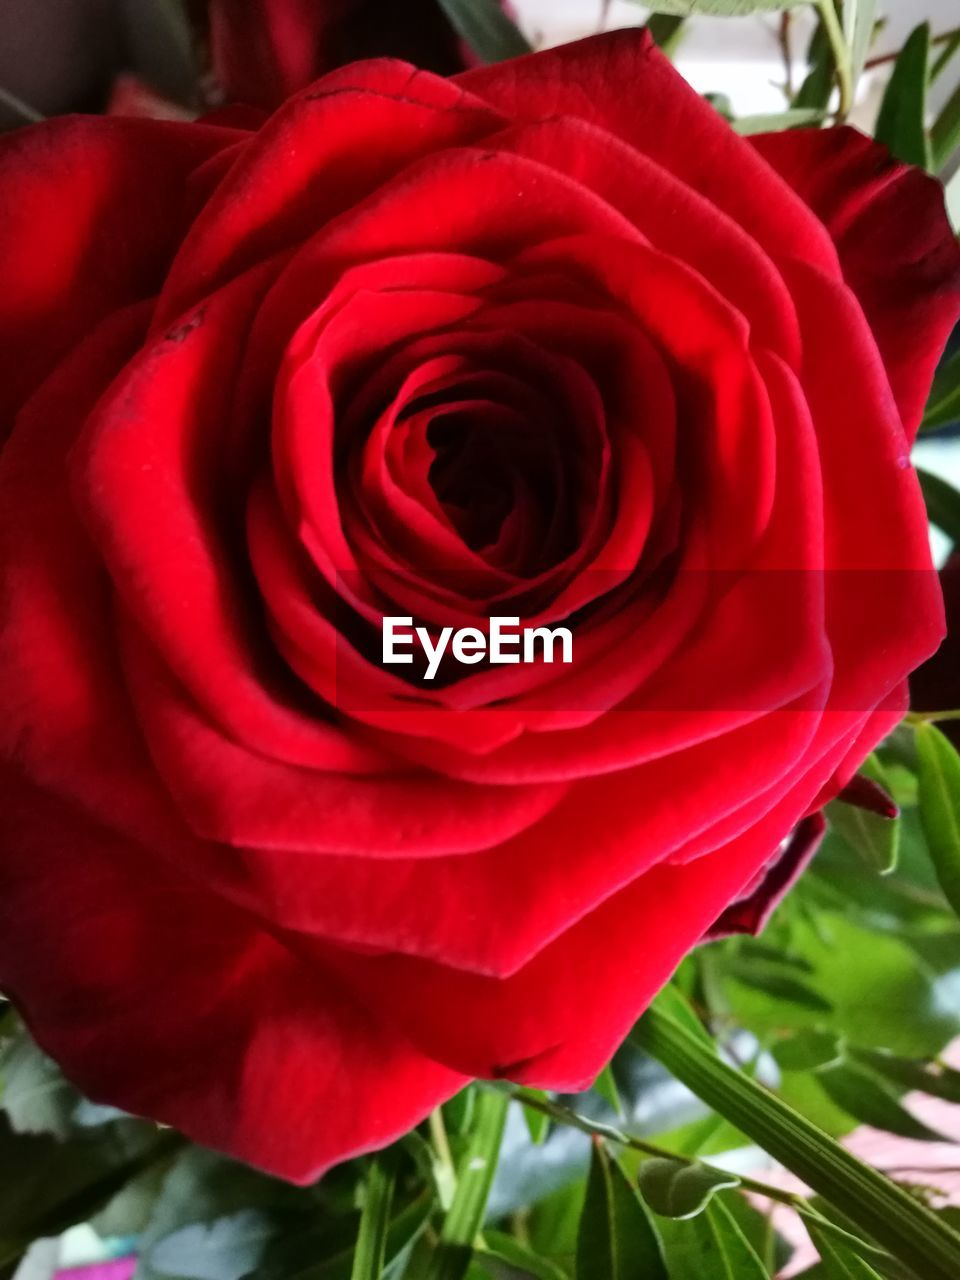 flower, flowering plant, beauty in nature, rose, plant, petal, rose - flower, fragility, close-up, vulnerability, inflorescence, flower head, freshness, red, nature, growth, focus on foreground, no people, day, outdoors